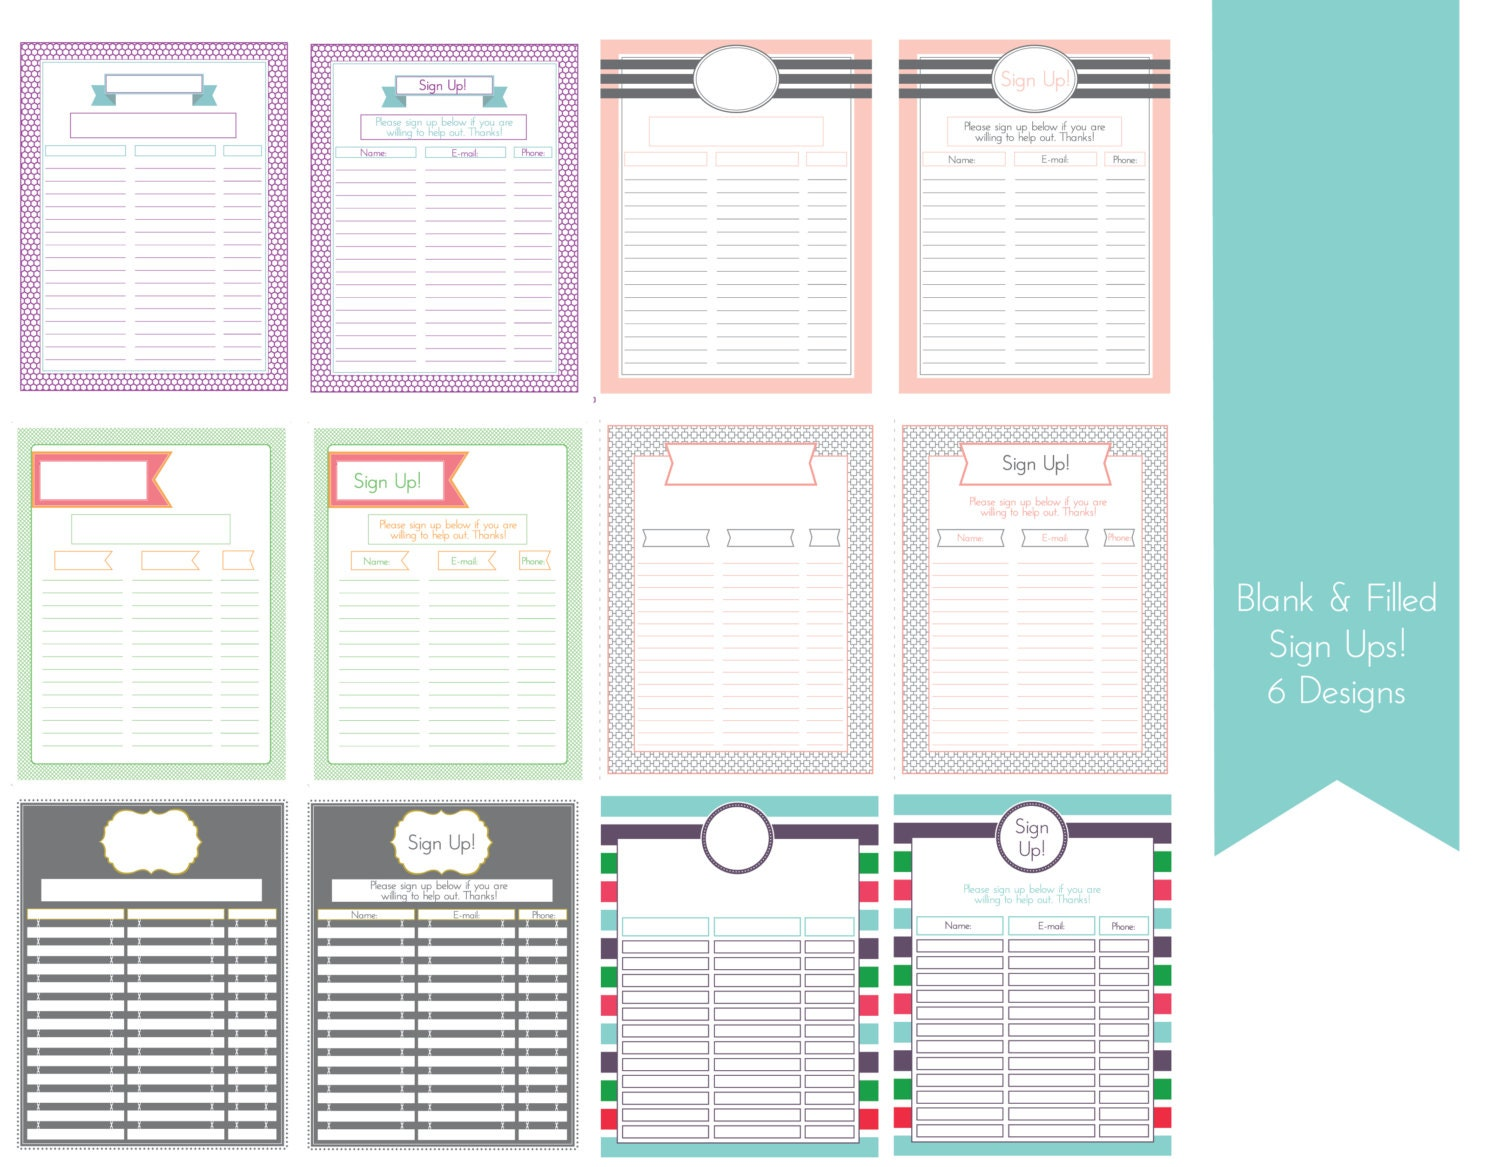 blank sign in sheet printable – Blank Sign Up Sheet